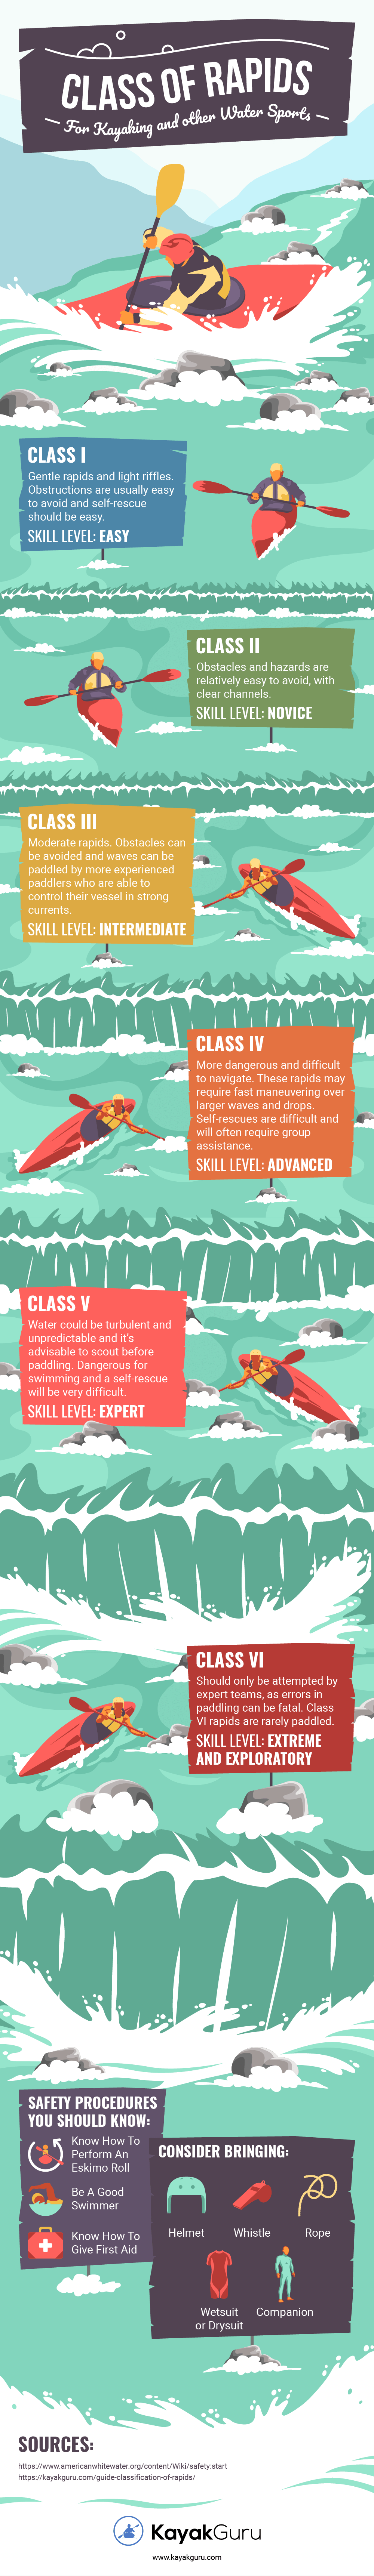 Guide To The Classification Of River Rapids | Kayaks, Rafting and Canoes